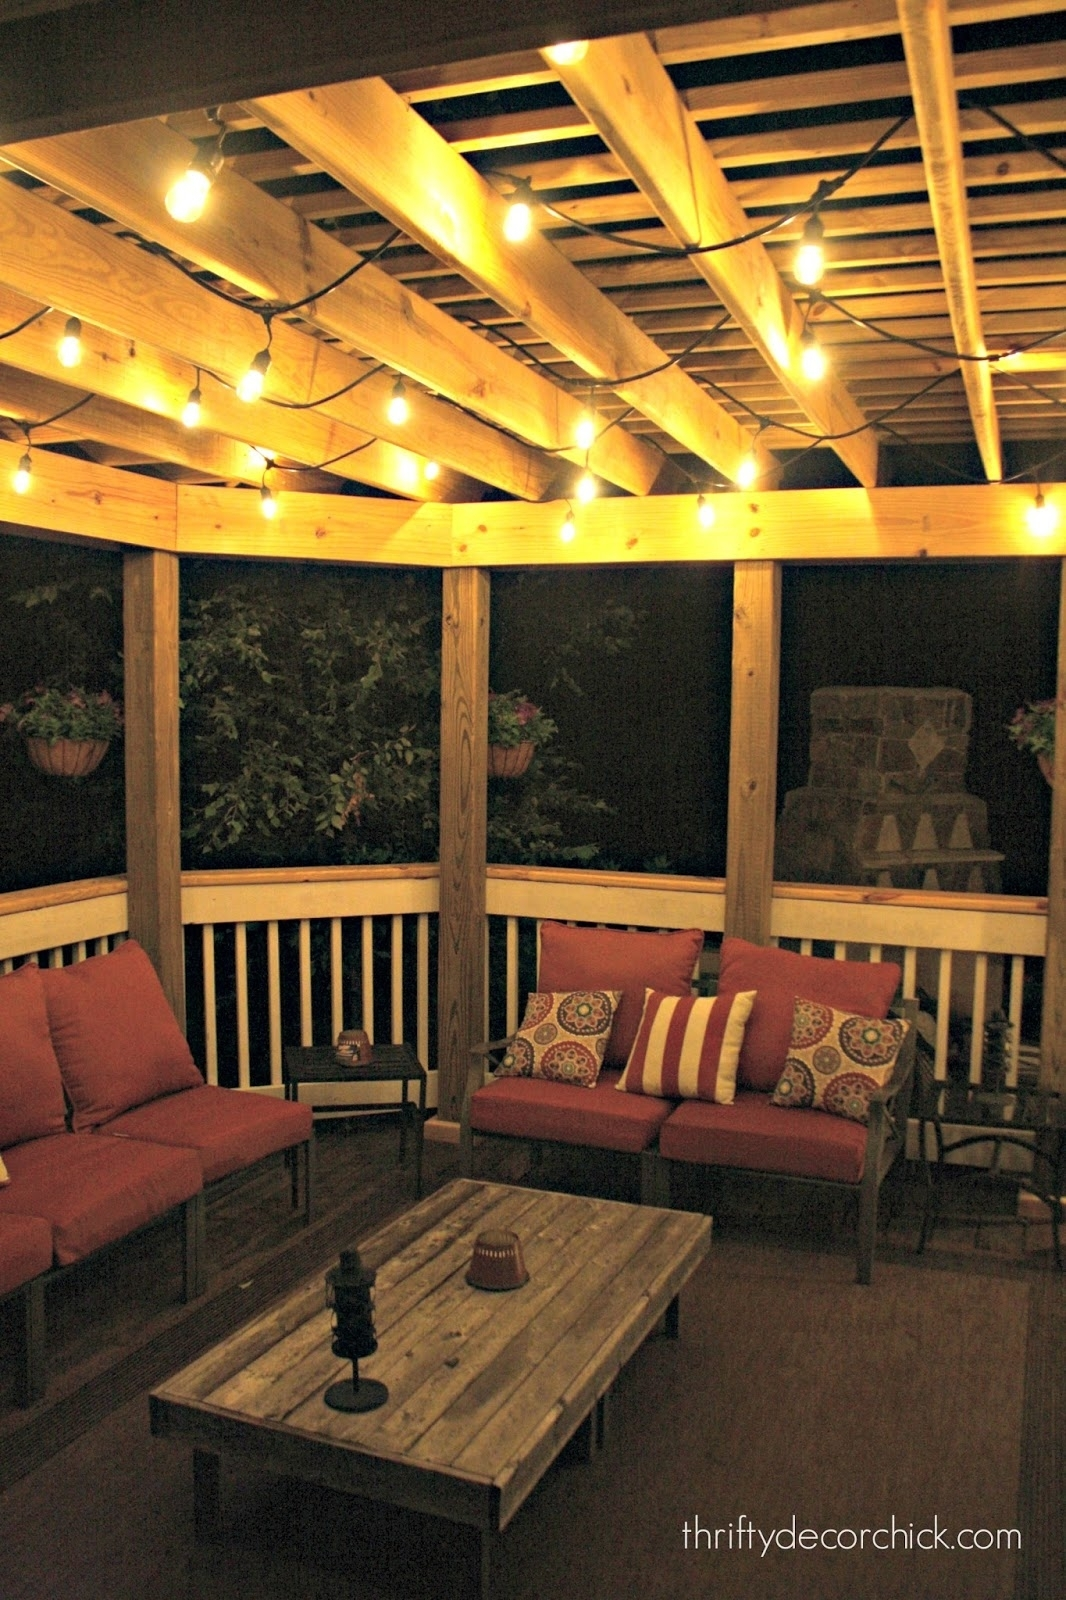 Inspiration about The Best Outdoor Lights From Thrifty Decor Chick Regarding Hanging Outdoor String Lights At Costco (#5 of 15)